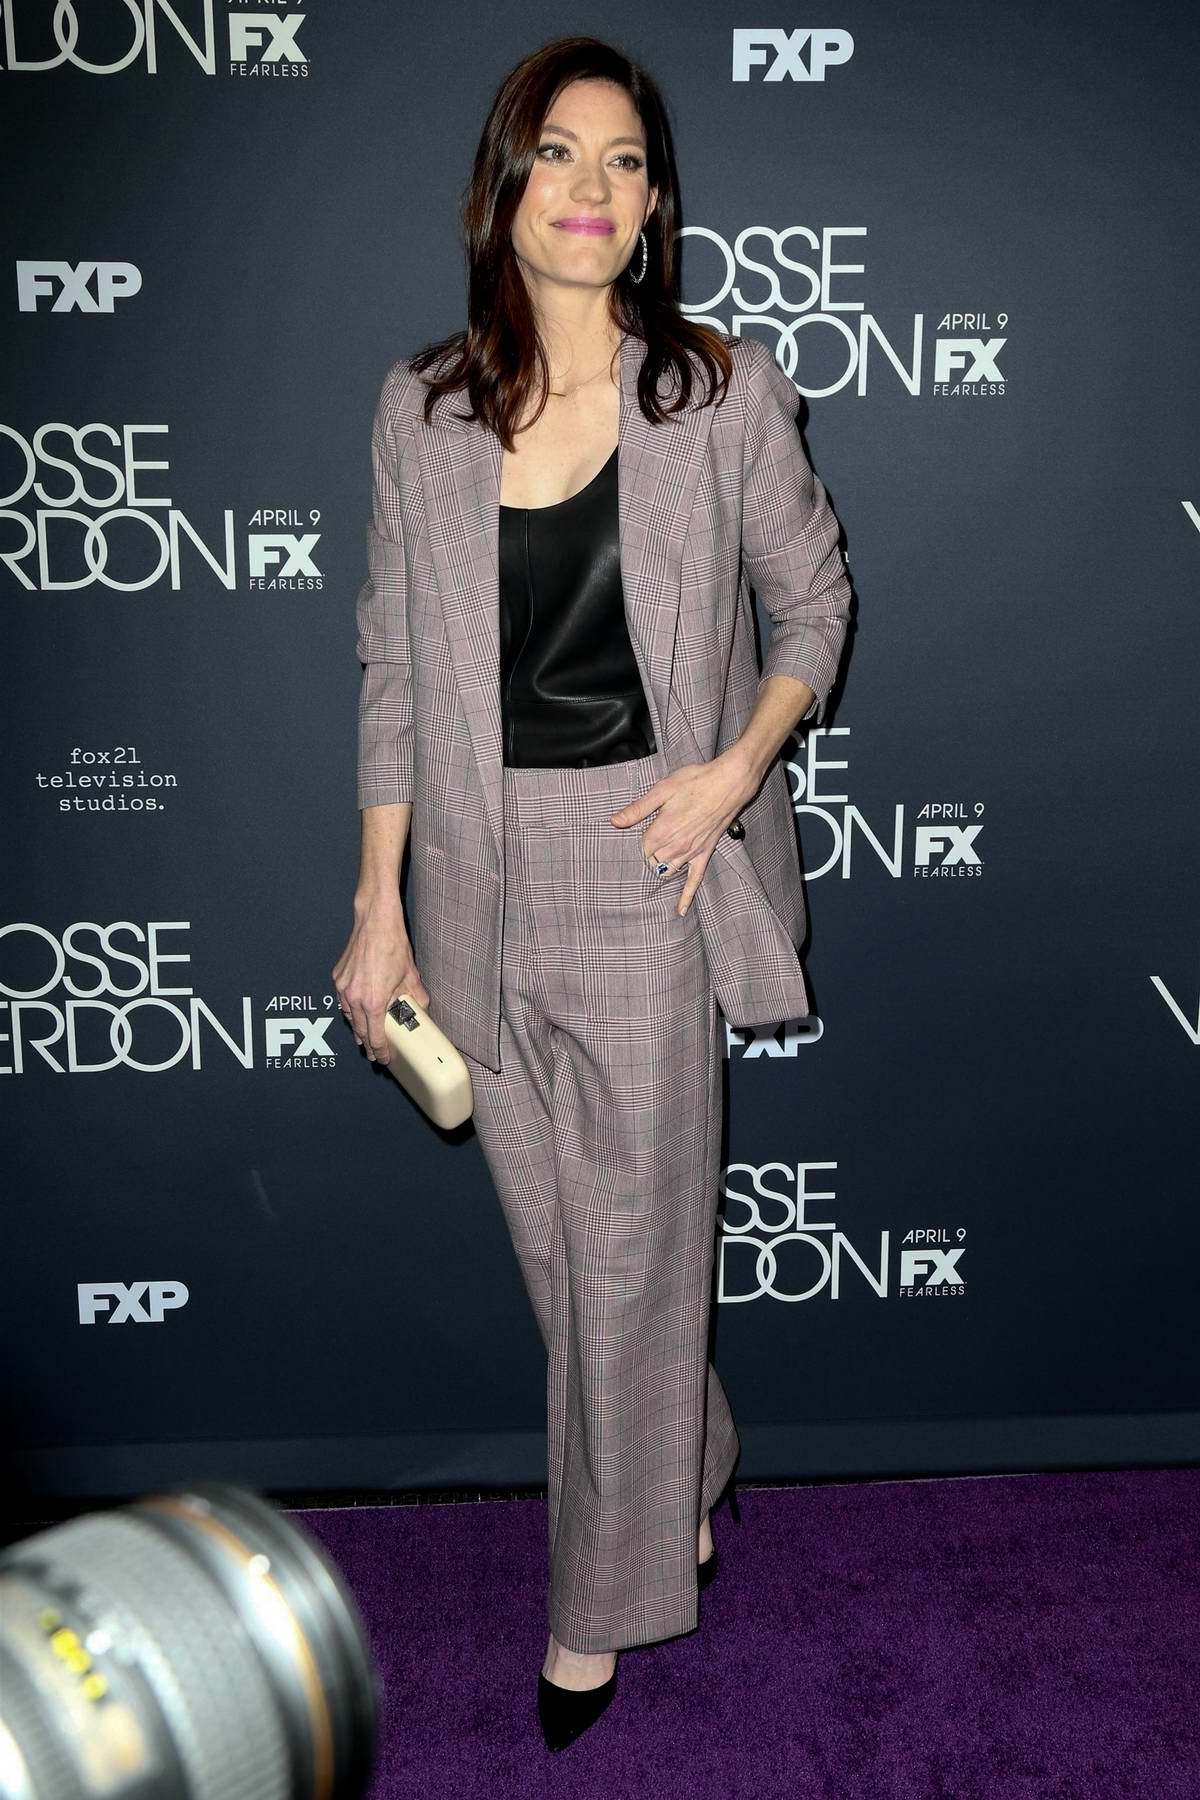 Jennifer Carpenter attends the premiere of the FX Series 'Fosse/Verdon' in New York City